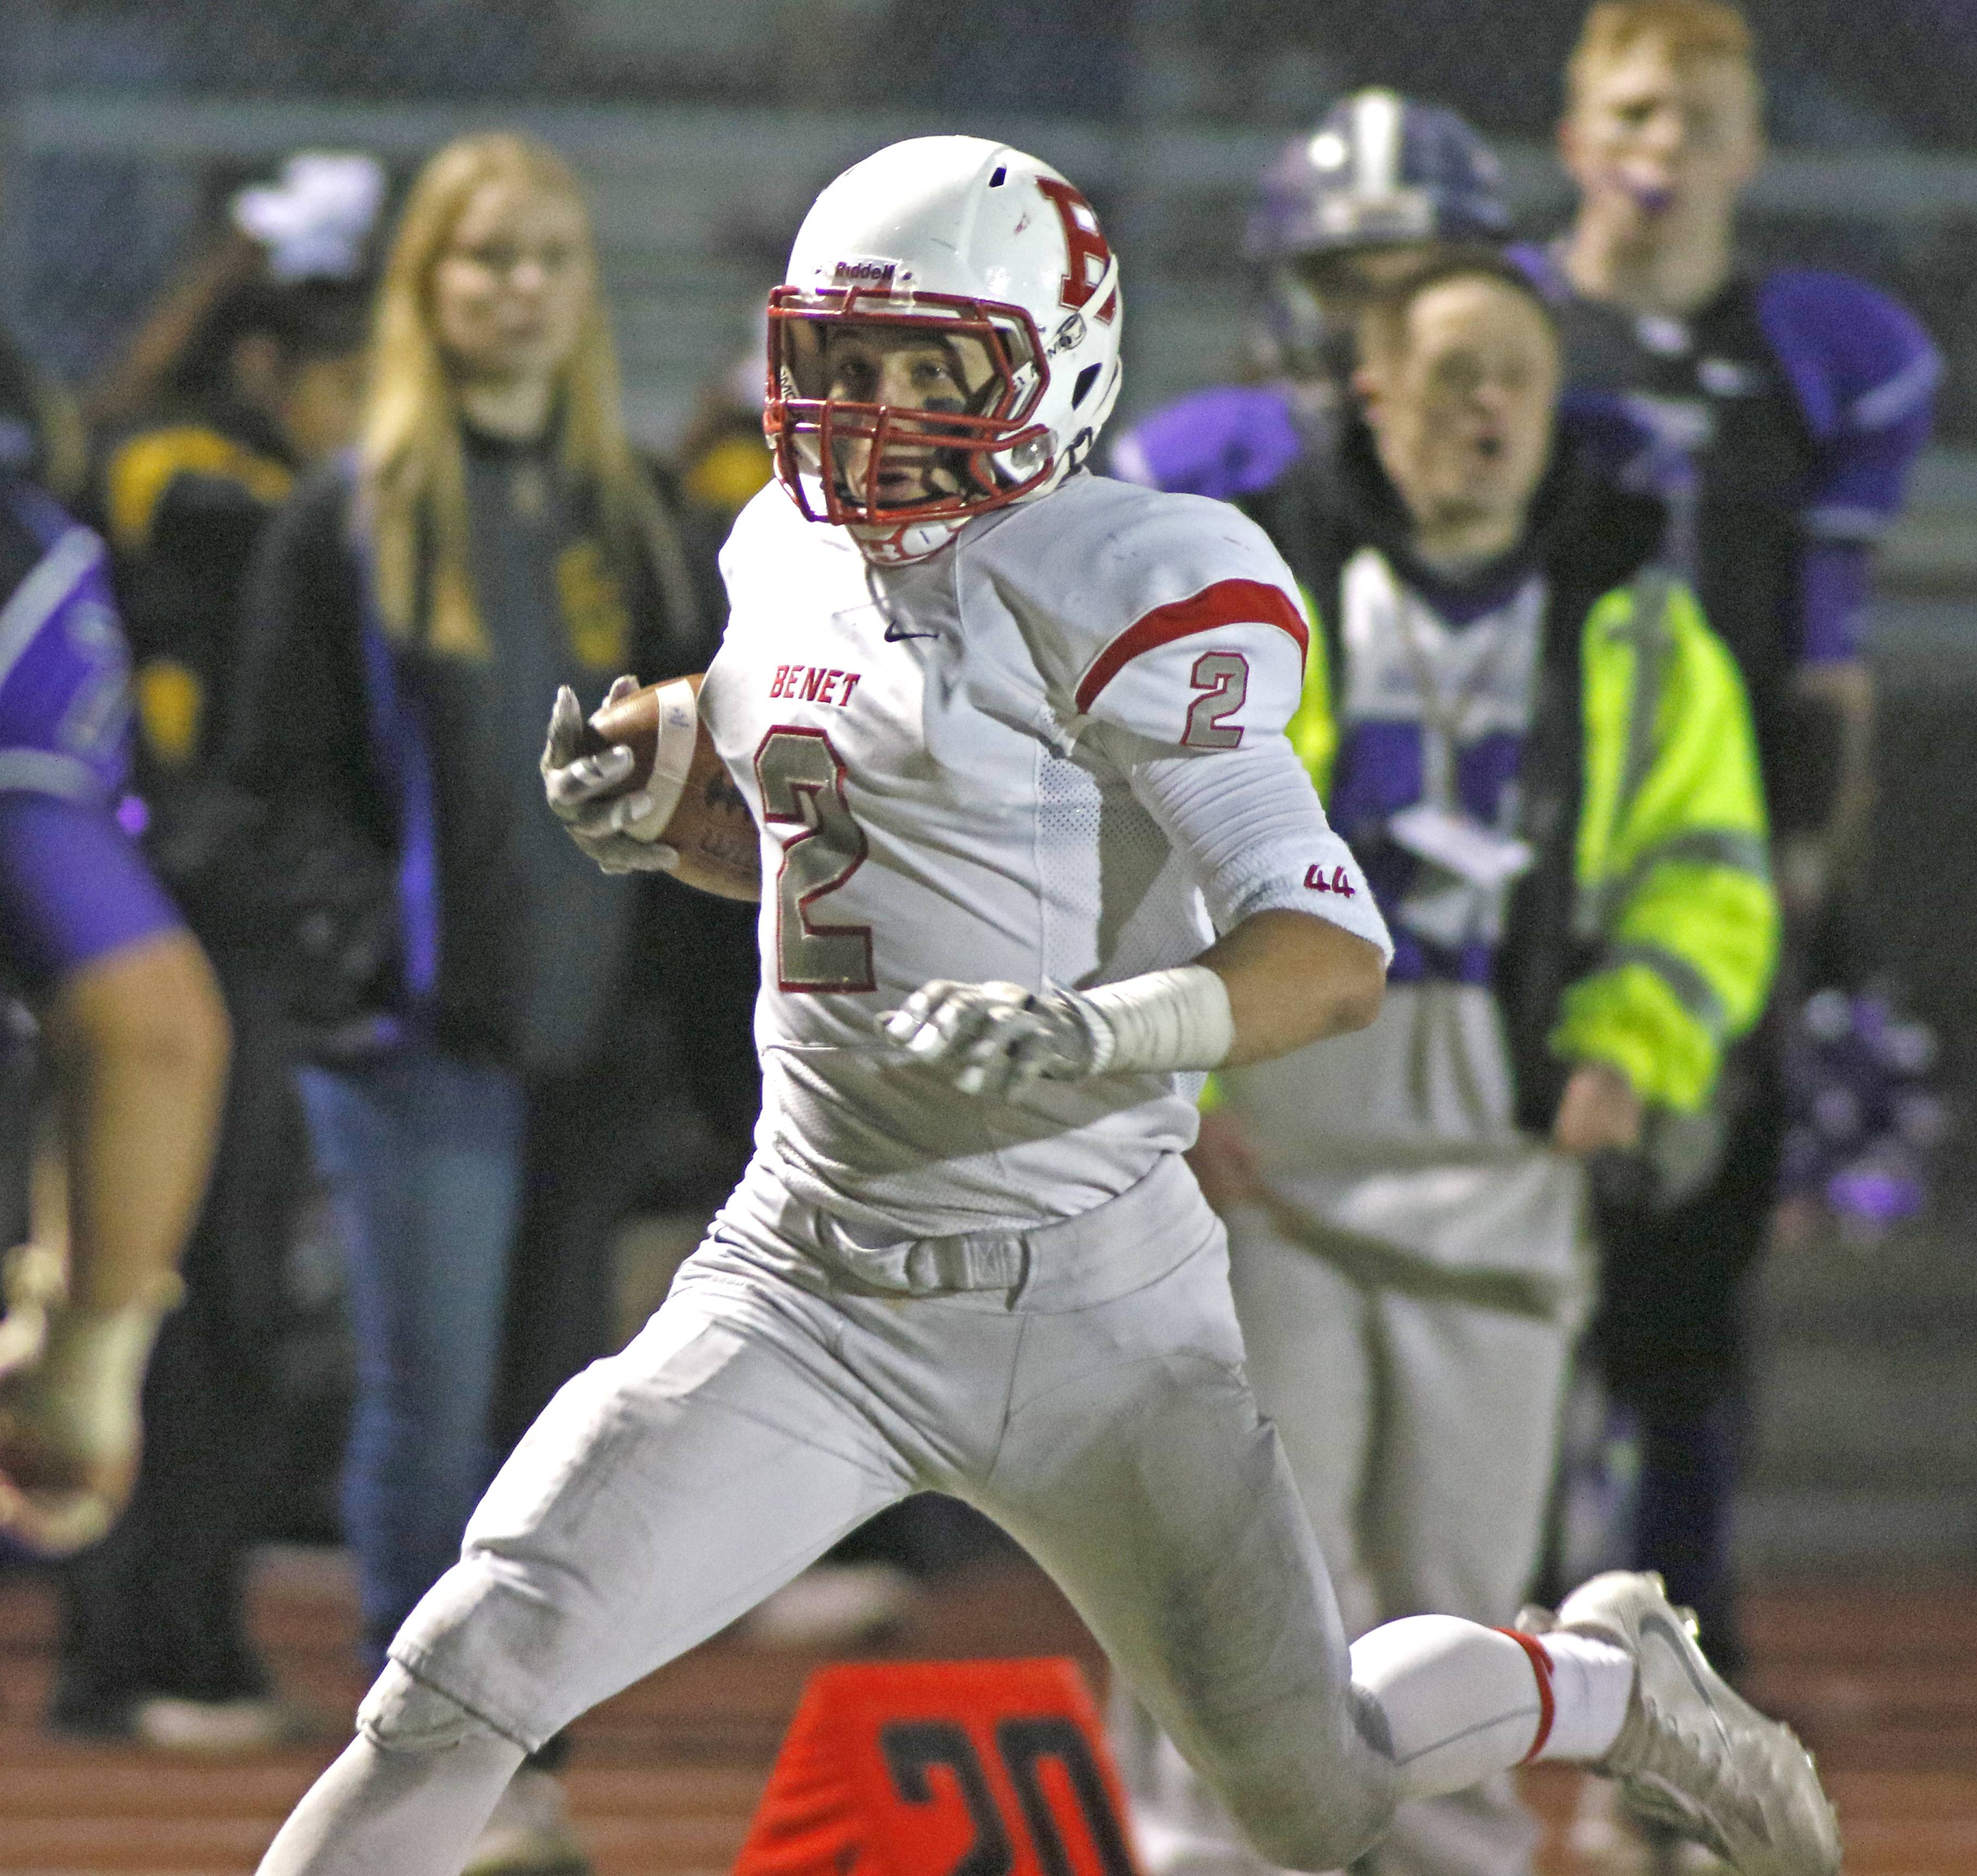 Benet Academy's Danny O'Malley runs back his second-half interception against Rolling Meadows during Class 7A football action in Rolling Meadows.